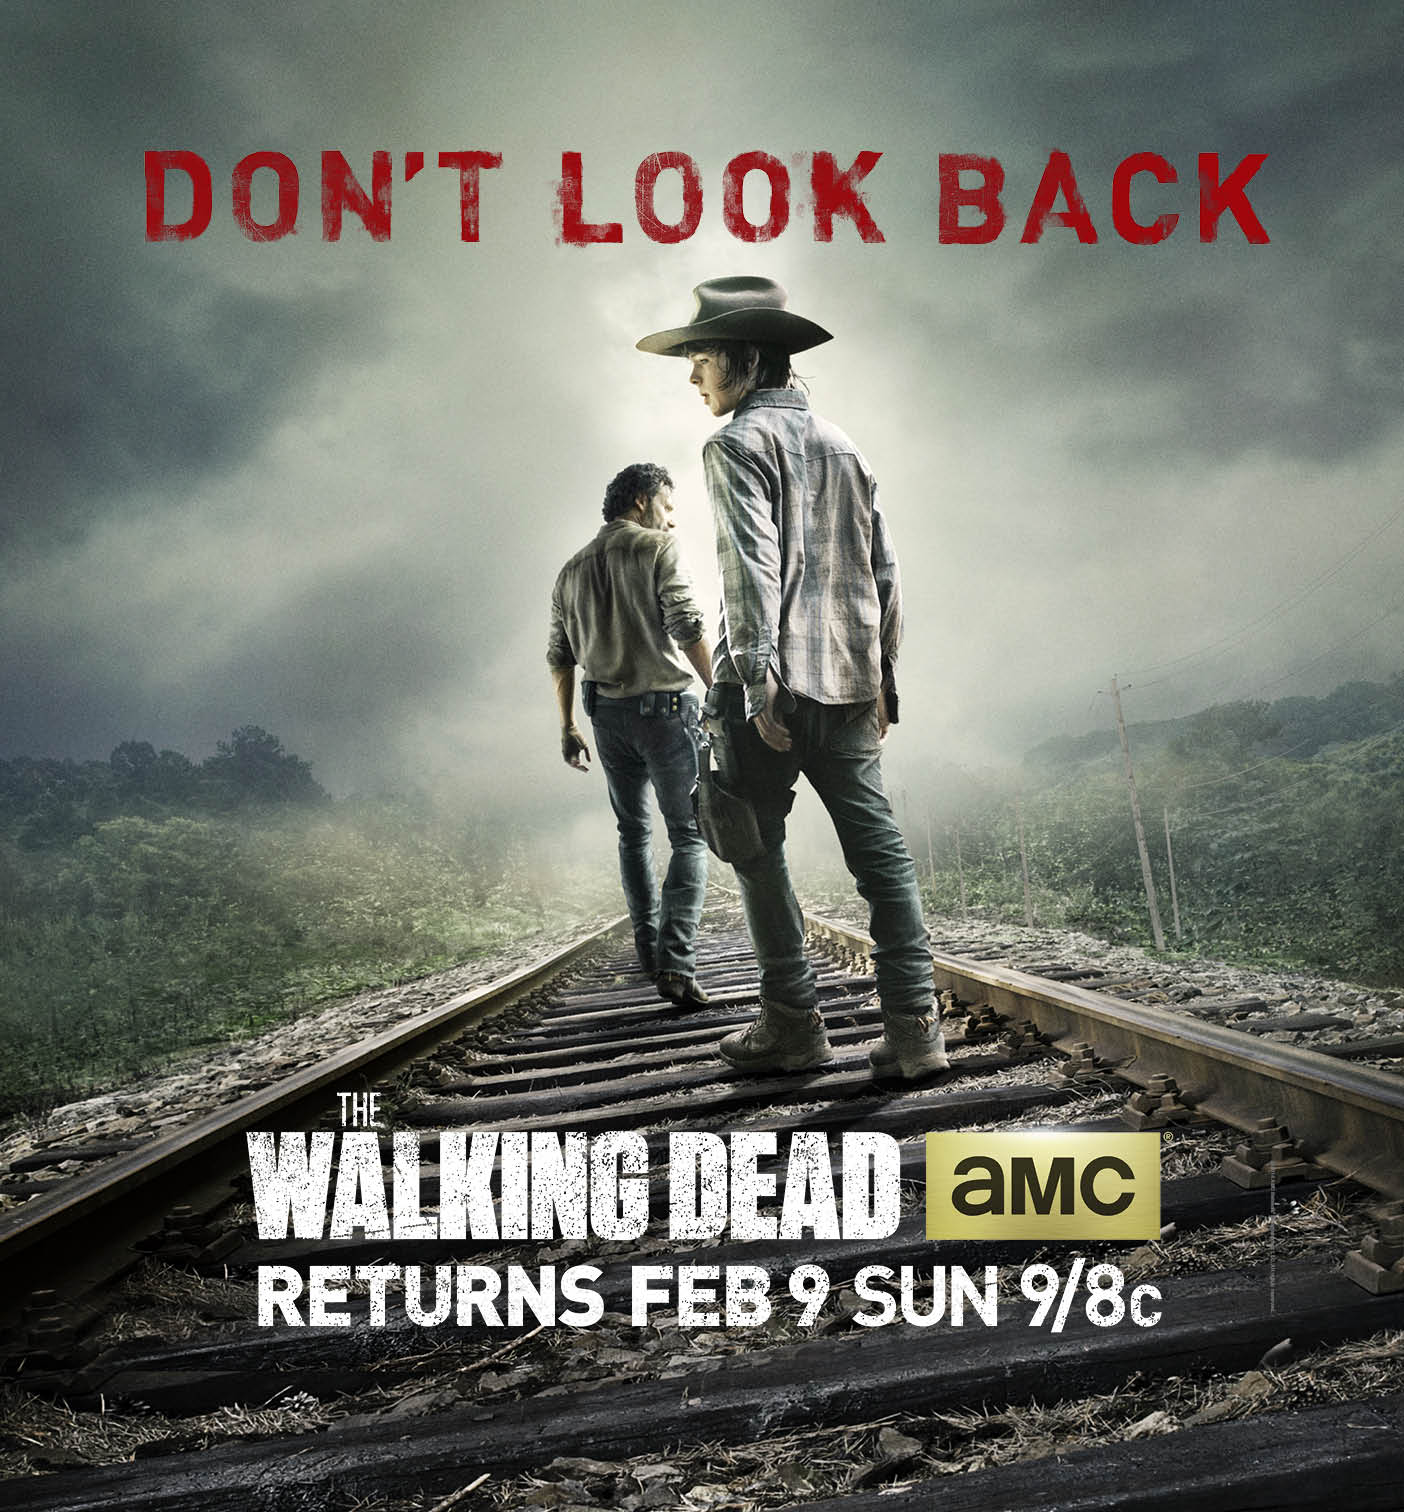 New Key Art From The Walking Dead Features Rick, Carl and New Tagline